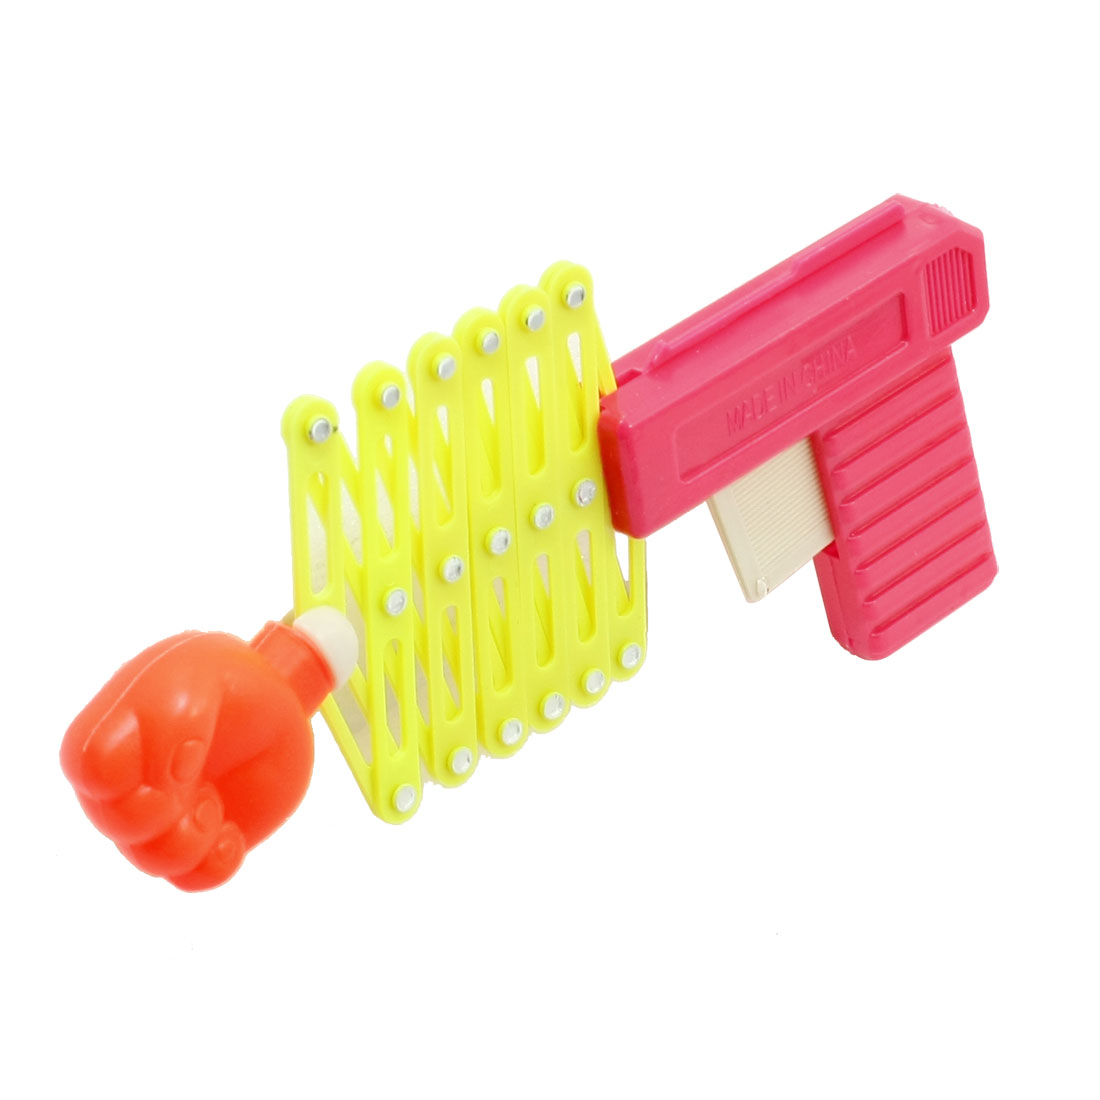 Kids Creative Novelty Game Spring Stretch Telescopic Fist Toy